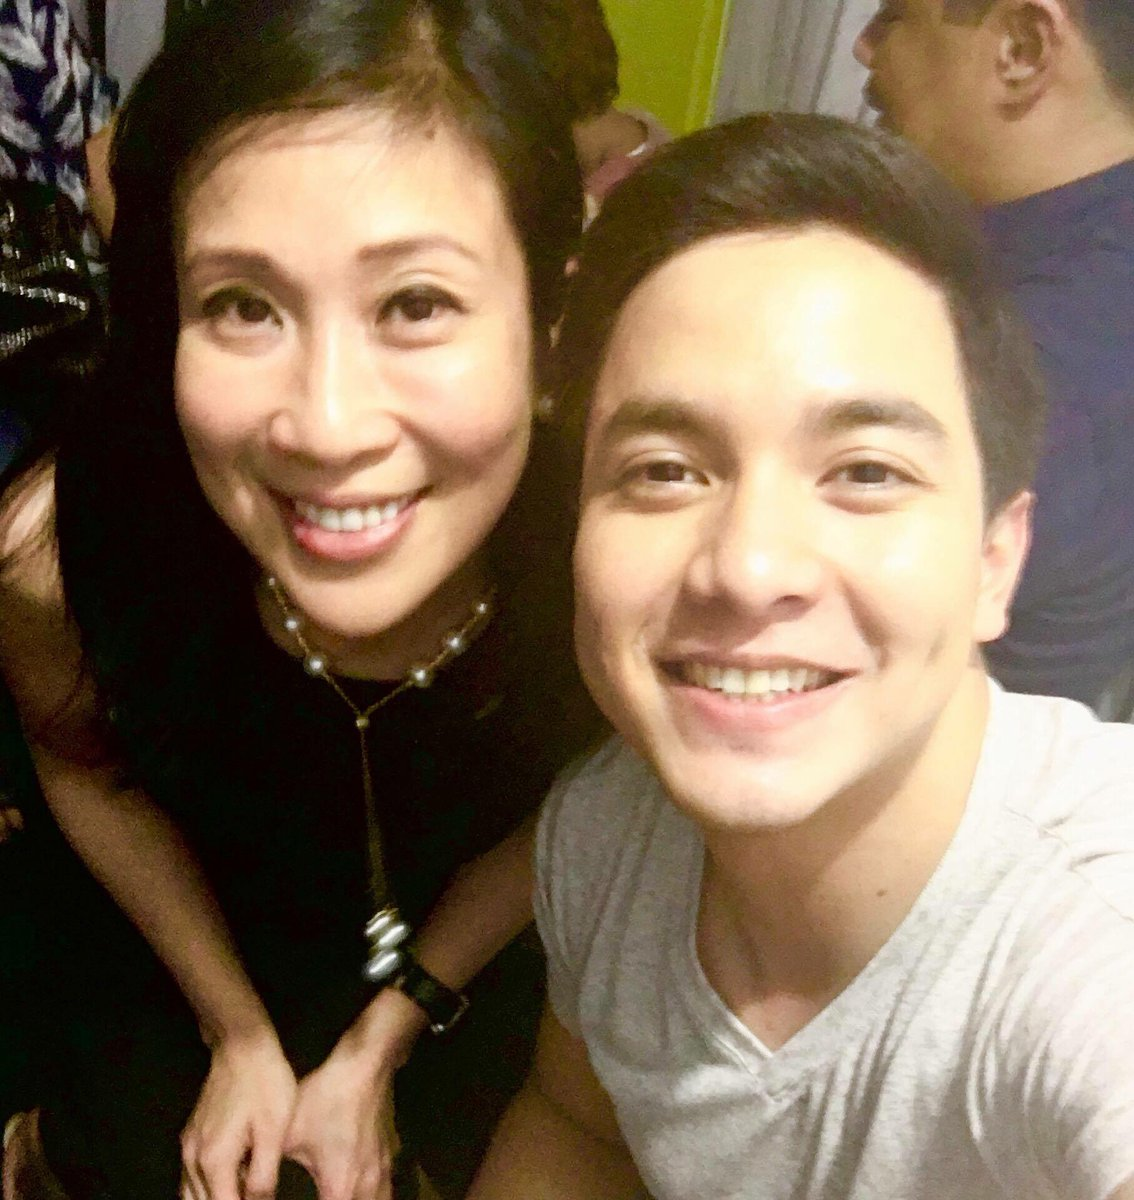 Annette's selfie with @aldenrichards02 #ALDUB11thMonthsary https://t.co/EMJ7jNaOVA